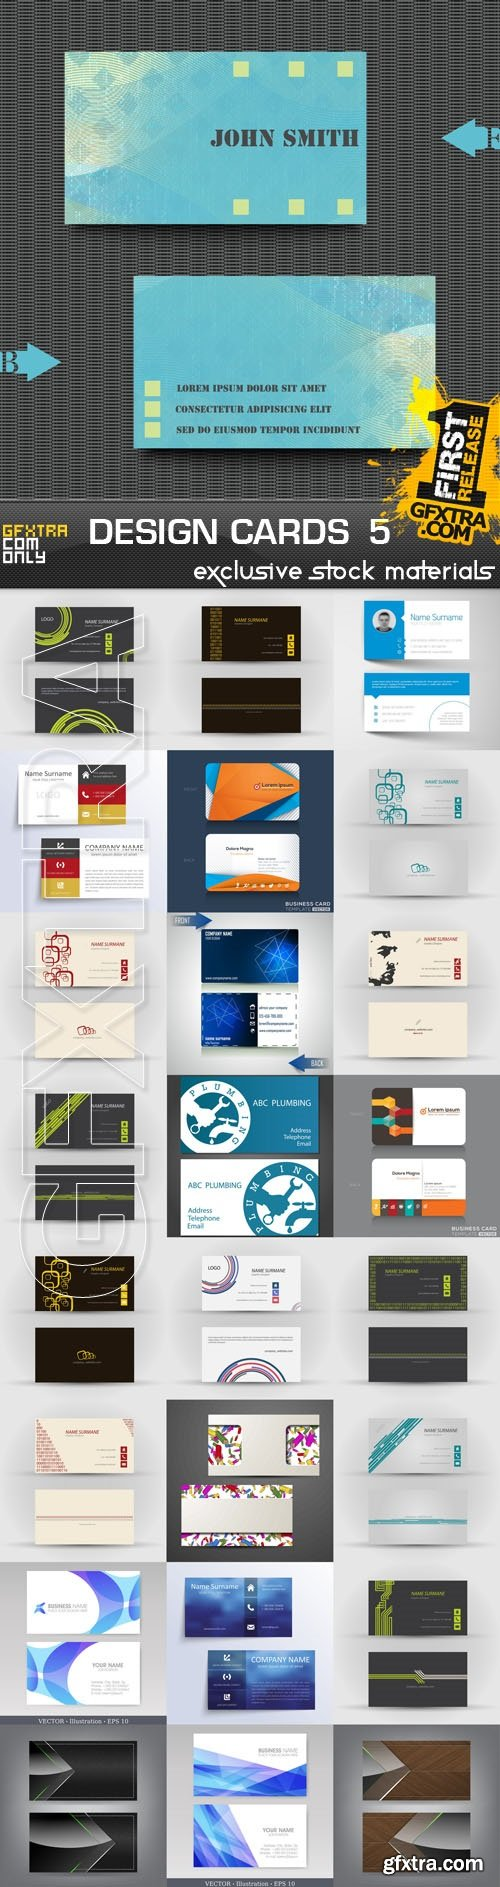 Design Cards Collection 5, 25xEPS